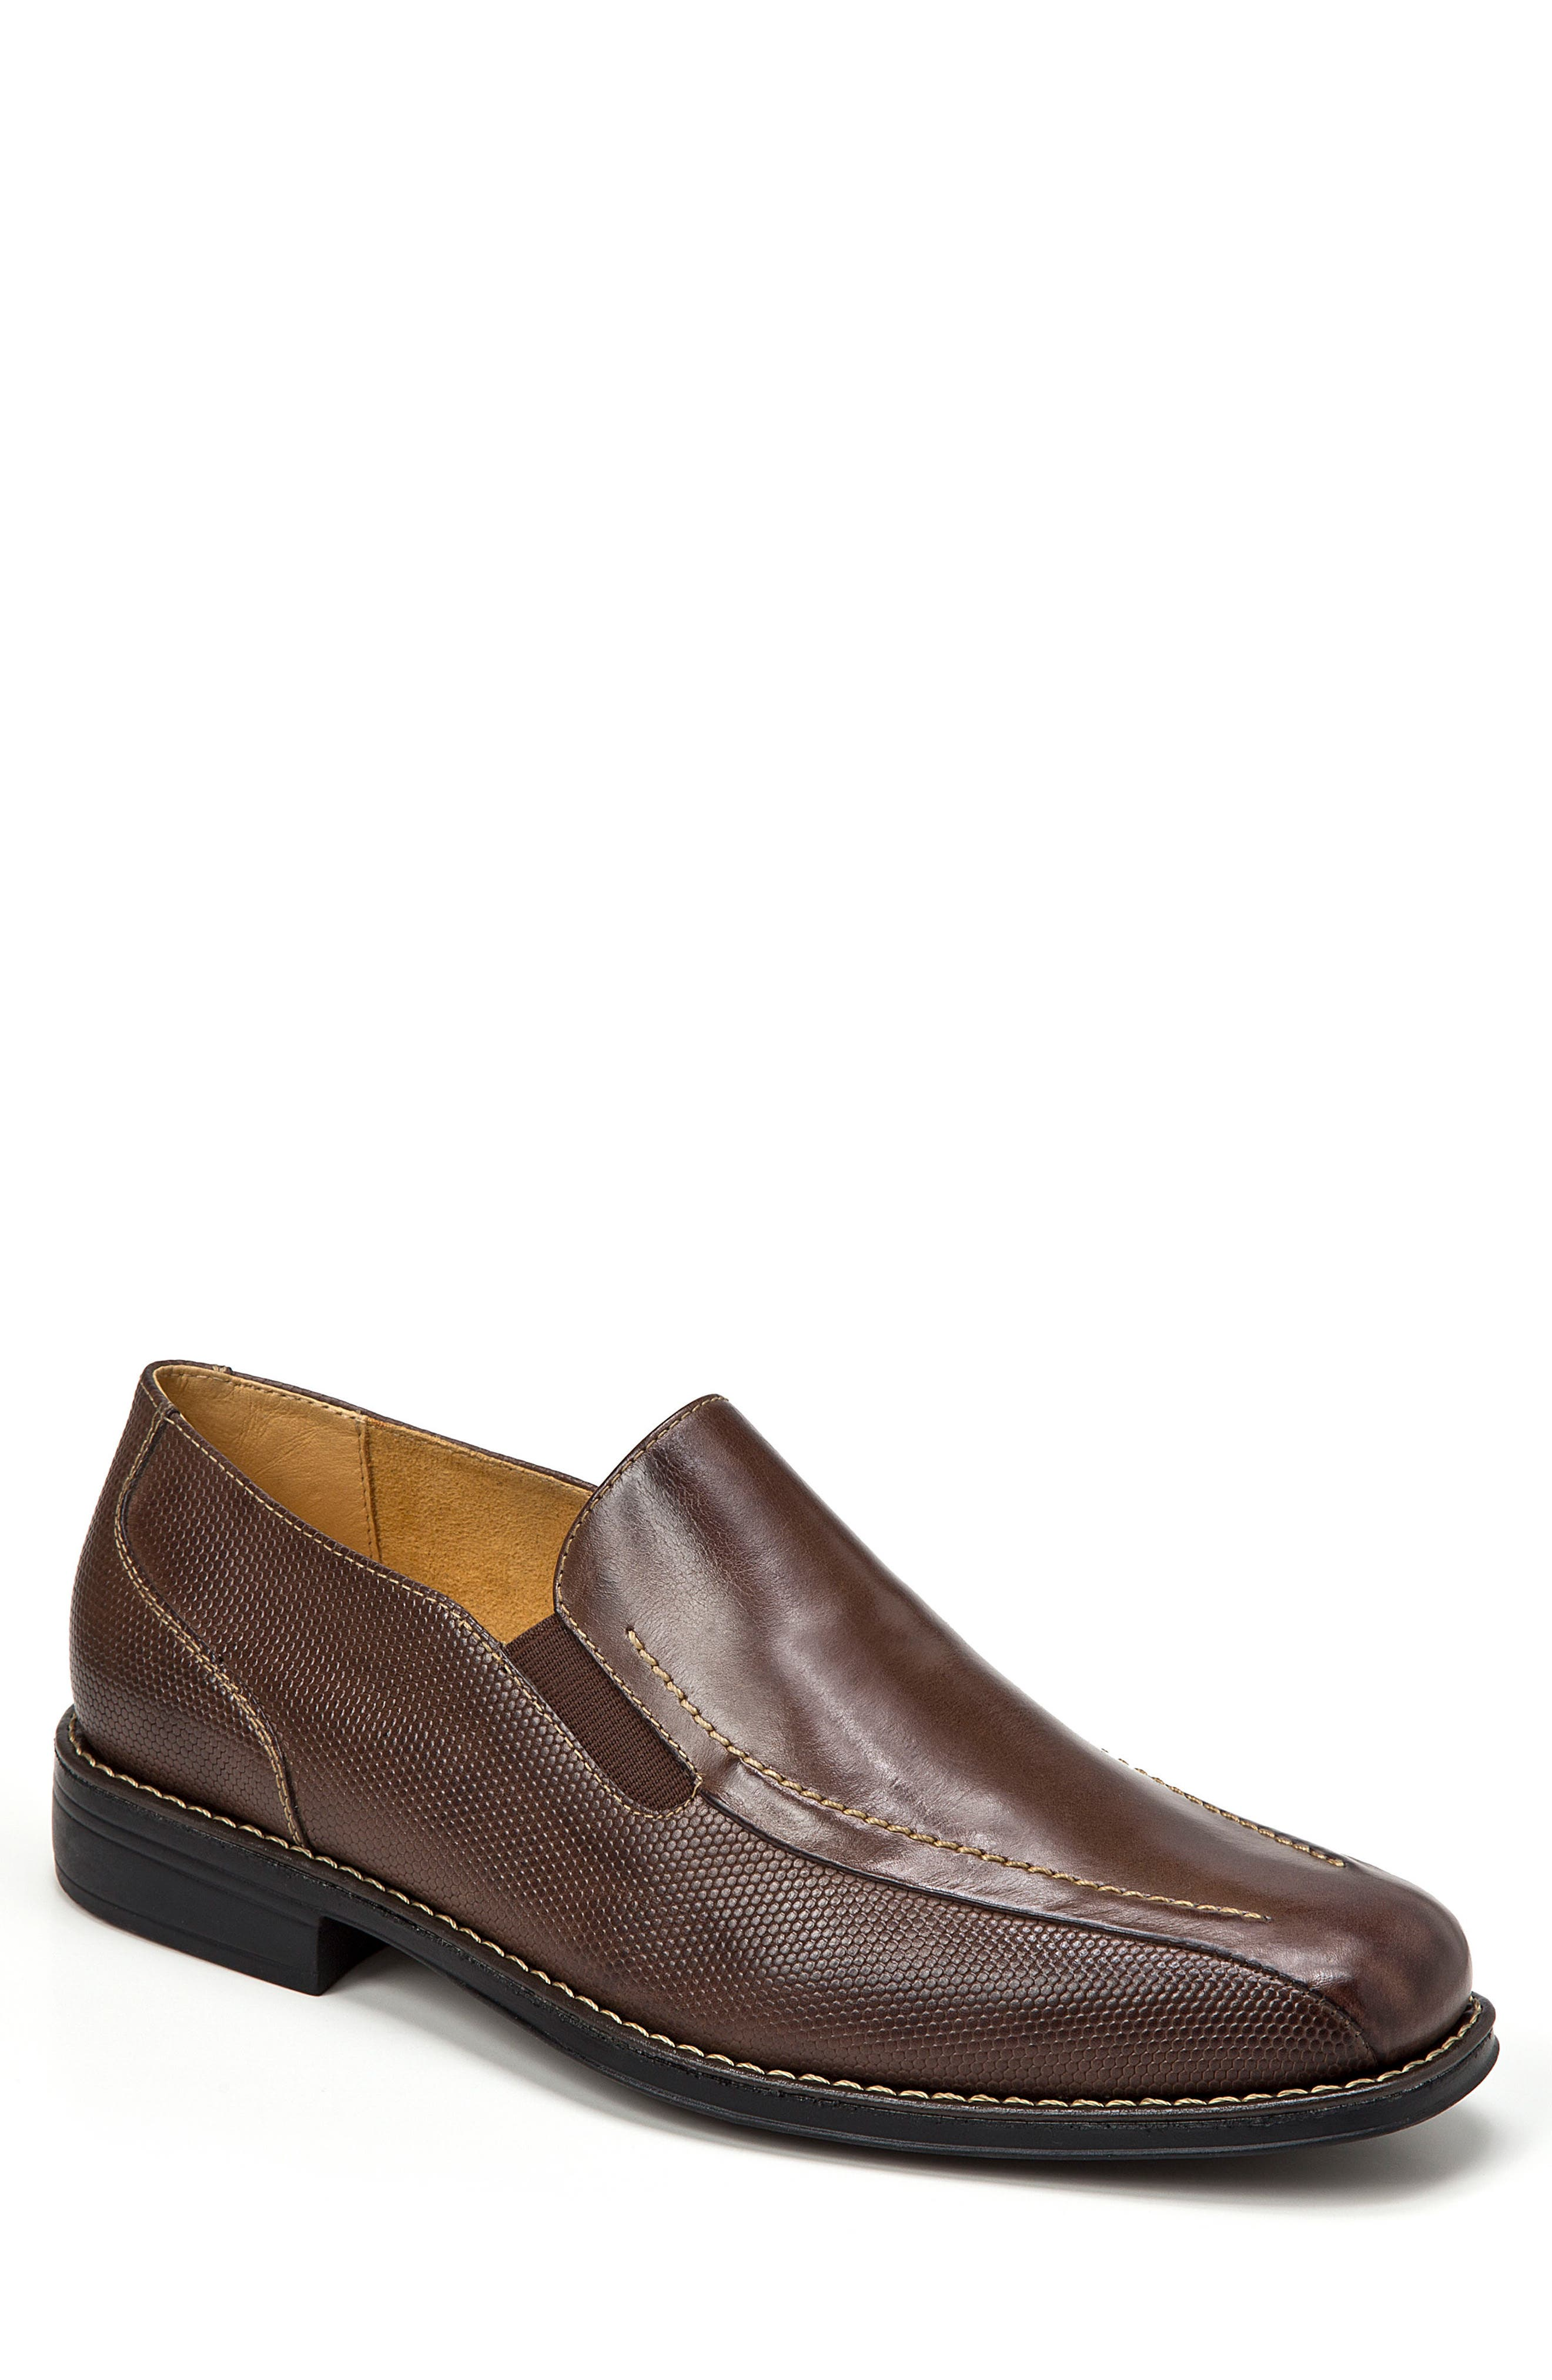 Sandro Moscoloni Enzo Venetian Loafer, Brown